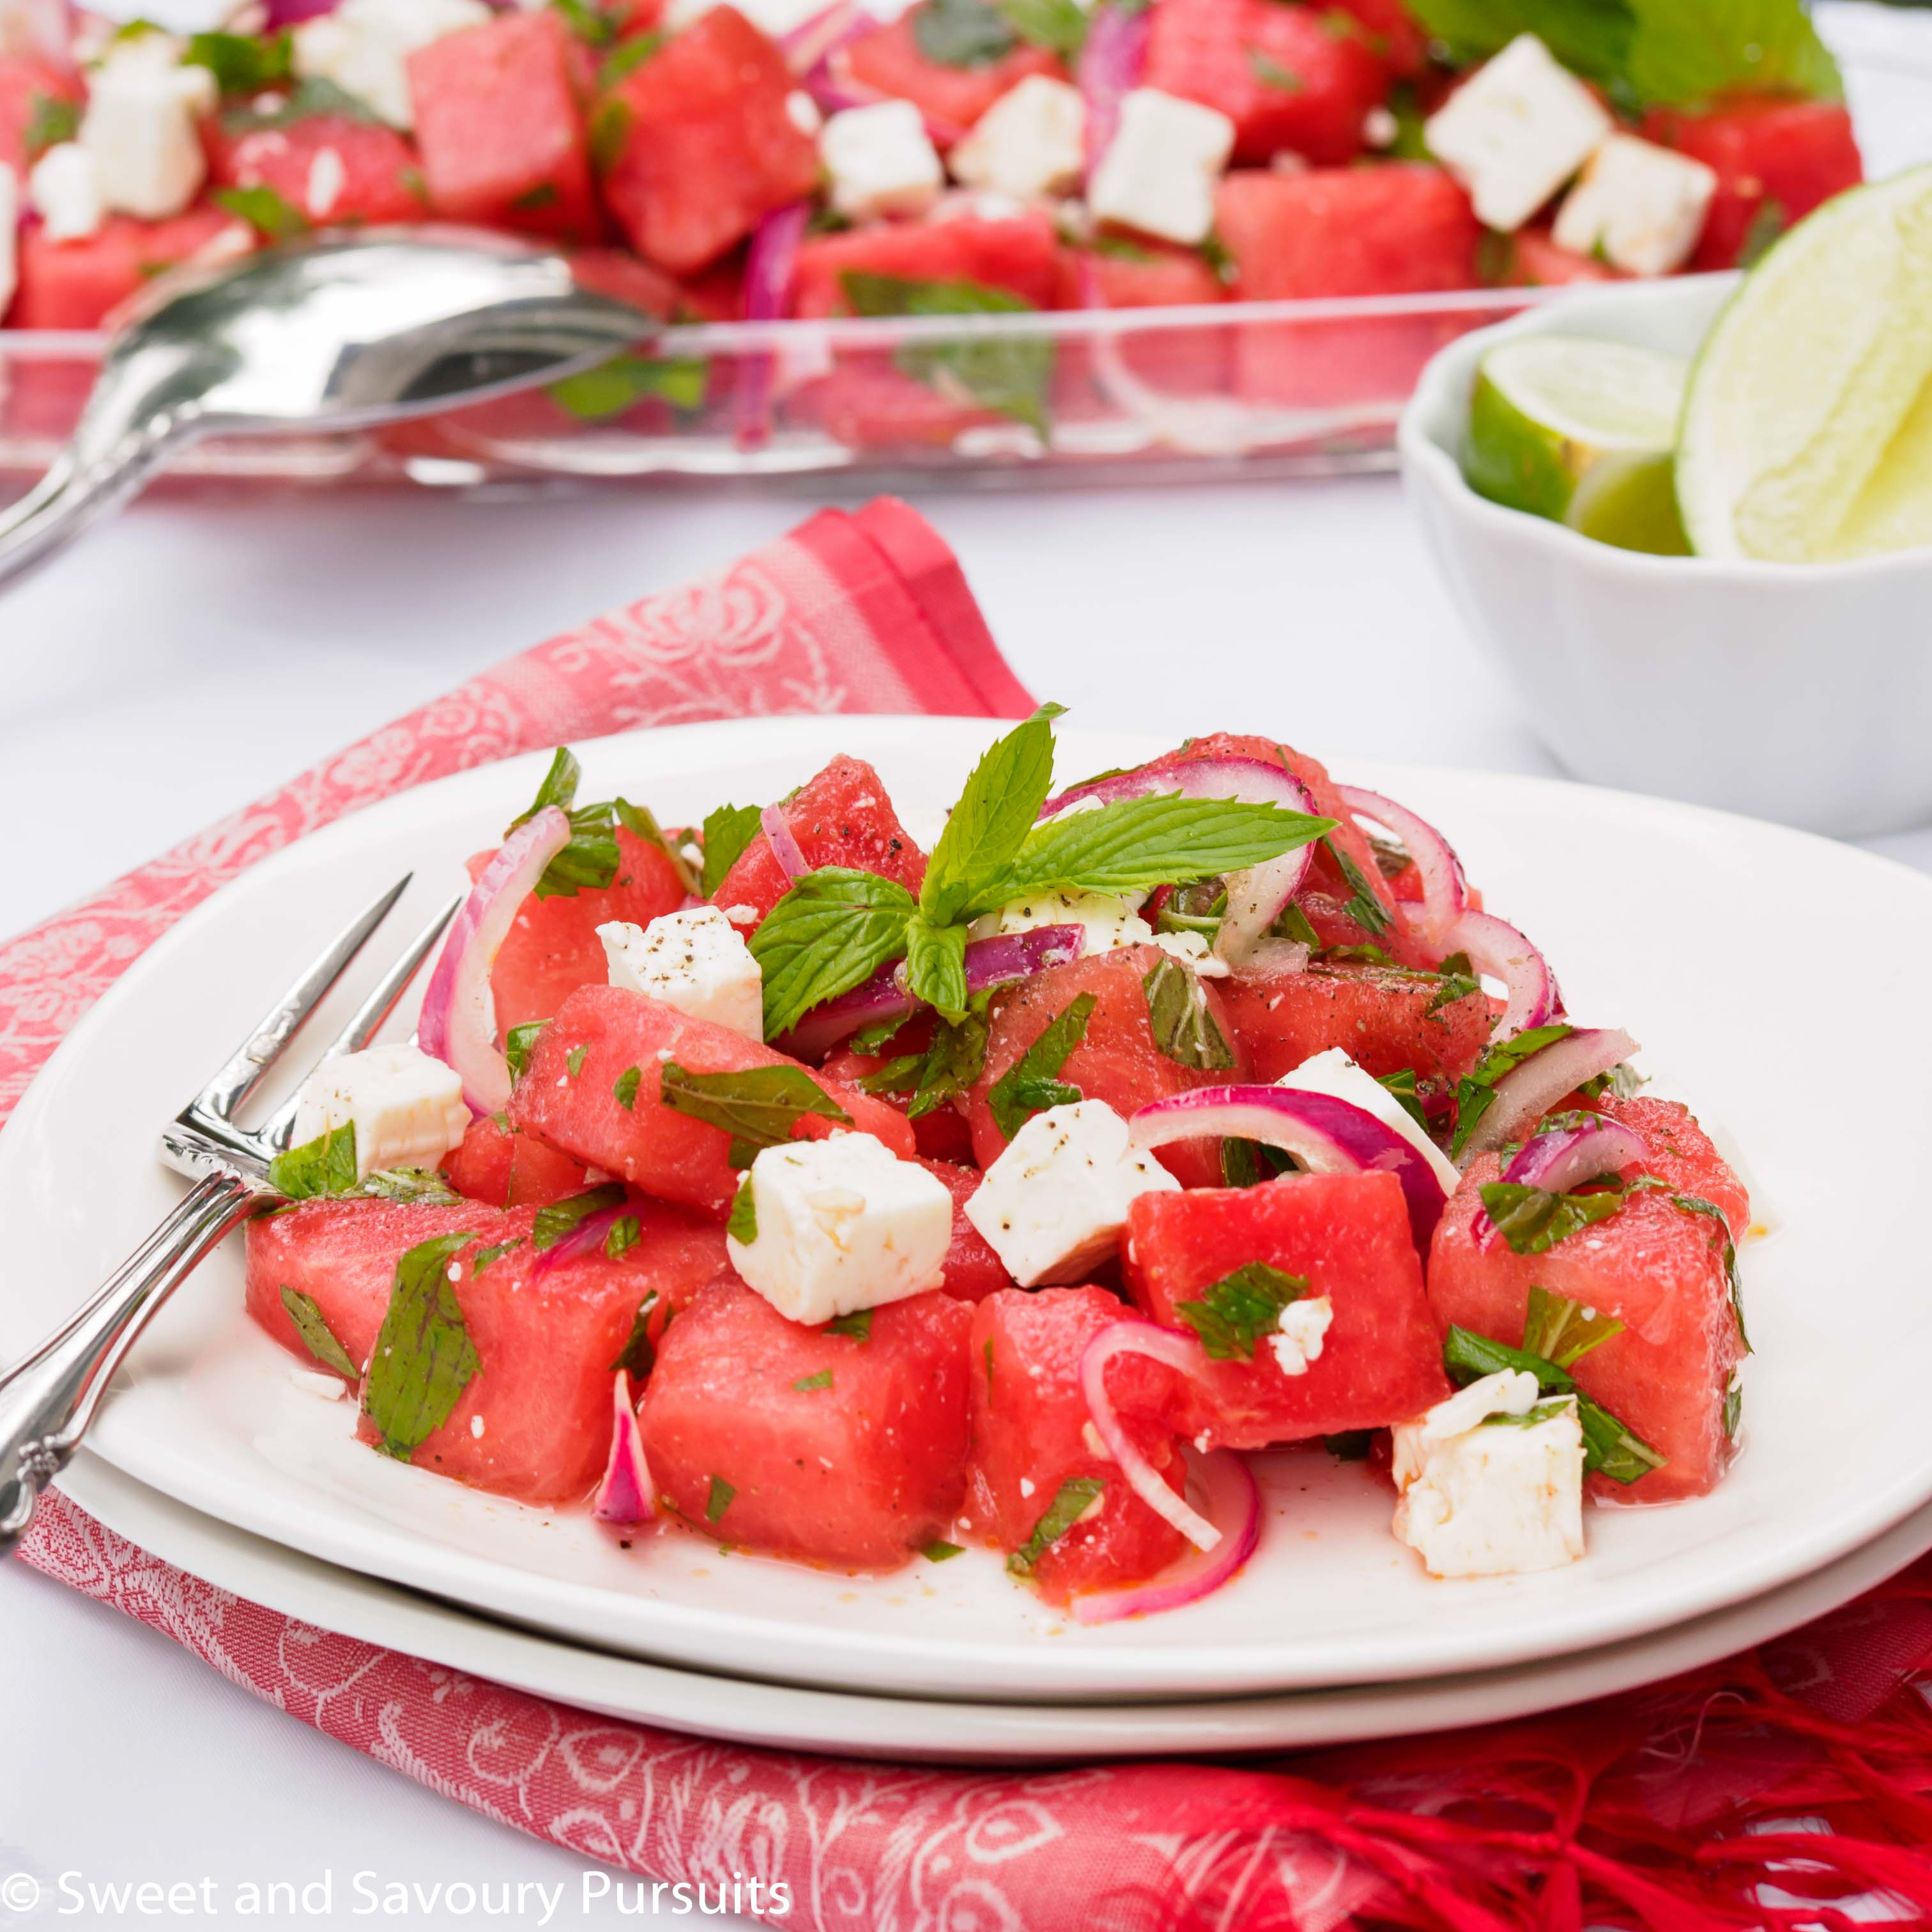 Salad made with cubed watermelon and feta cheese topped with fresh mint leaves and served on white dish.